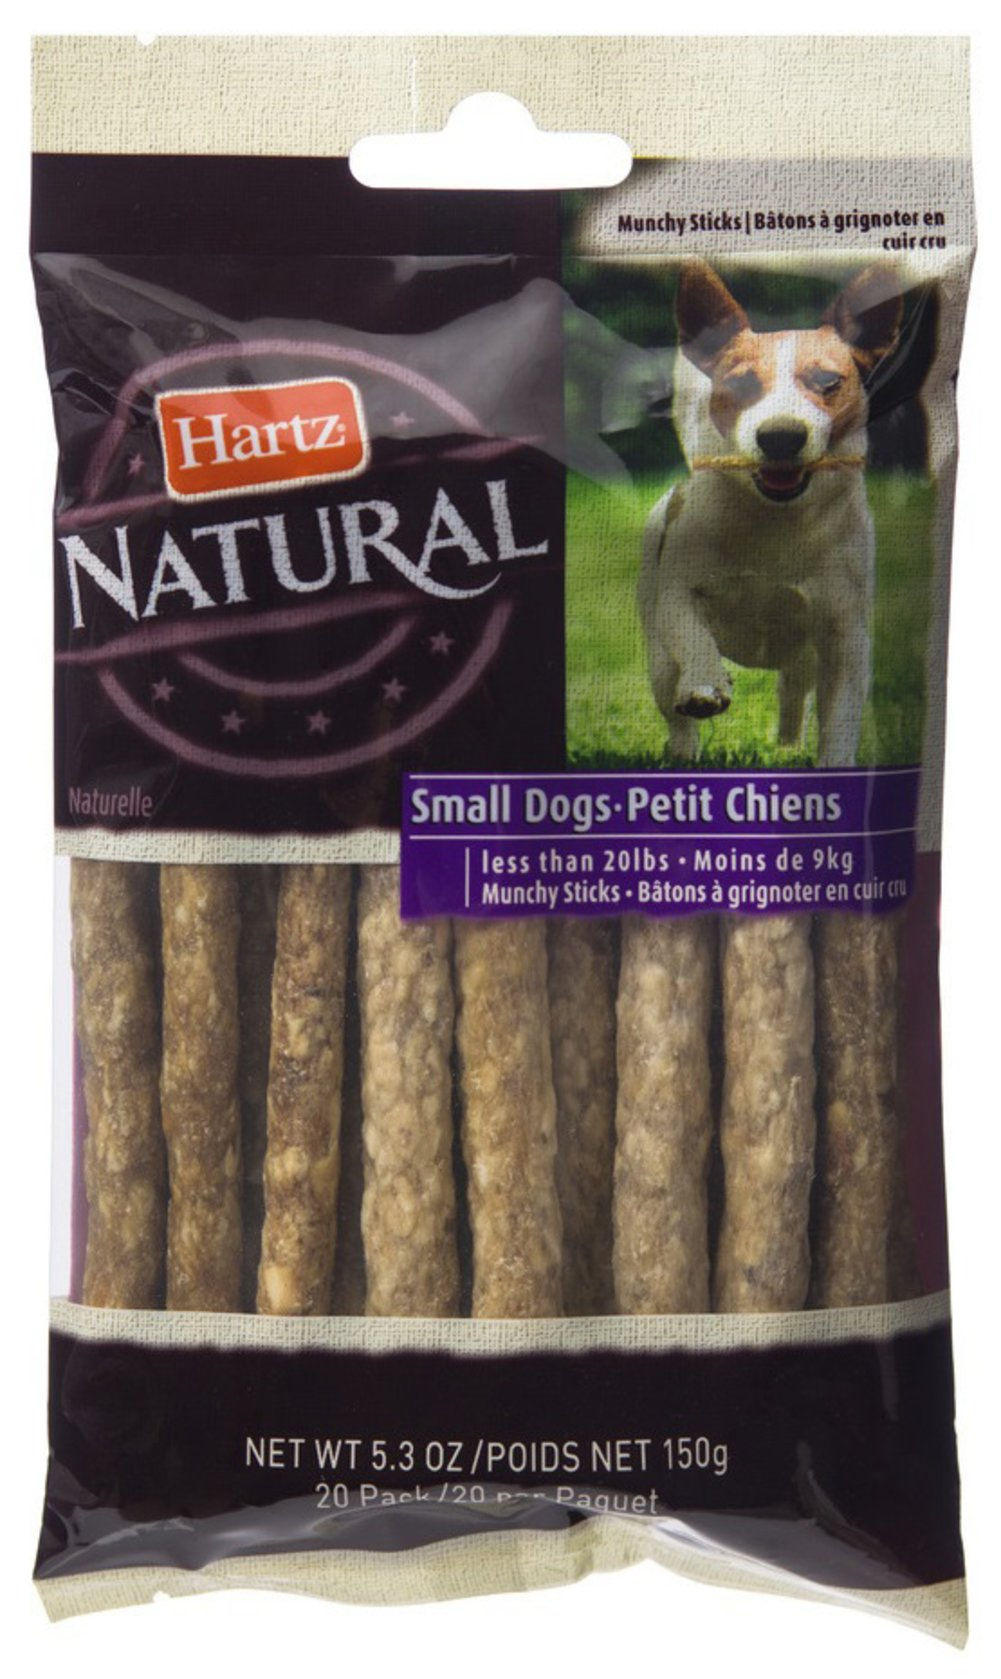 Rawhide Natural Sticks for Small Dogs  20 Pack  $4.99